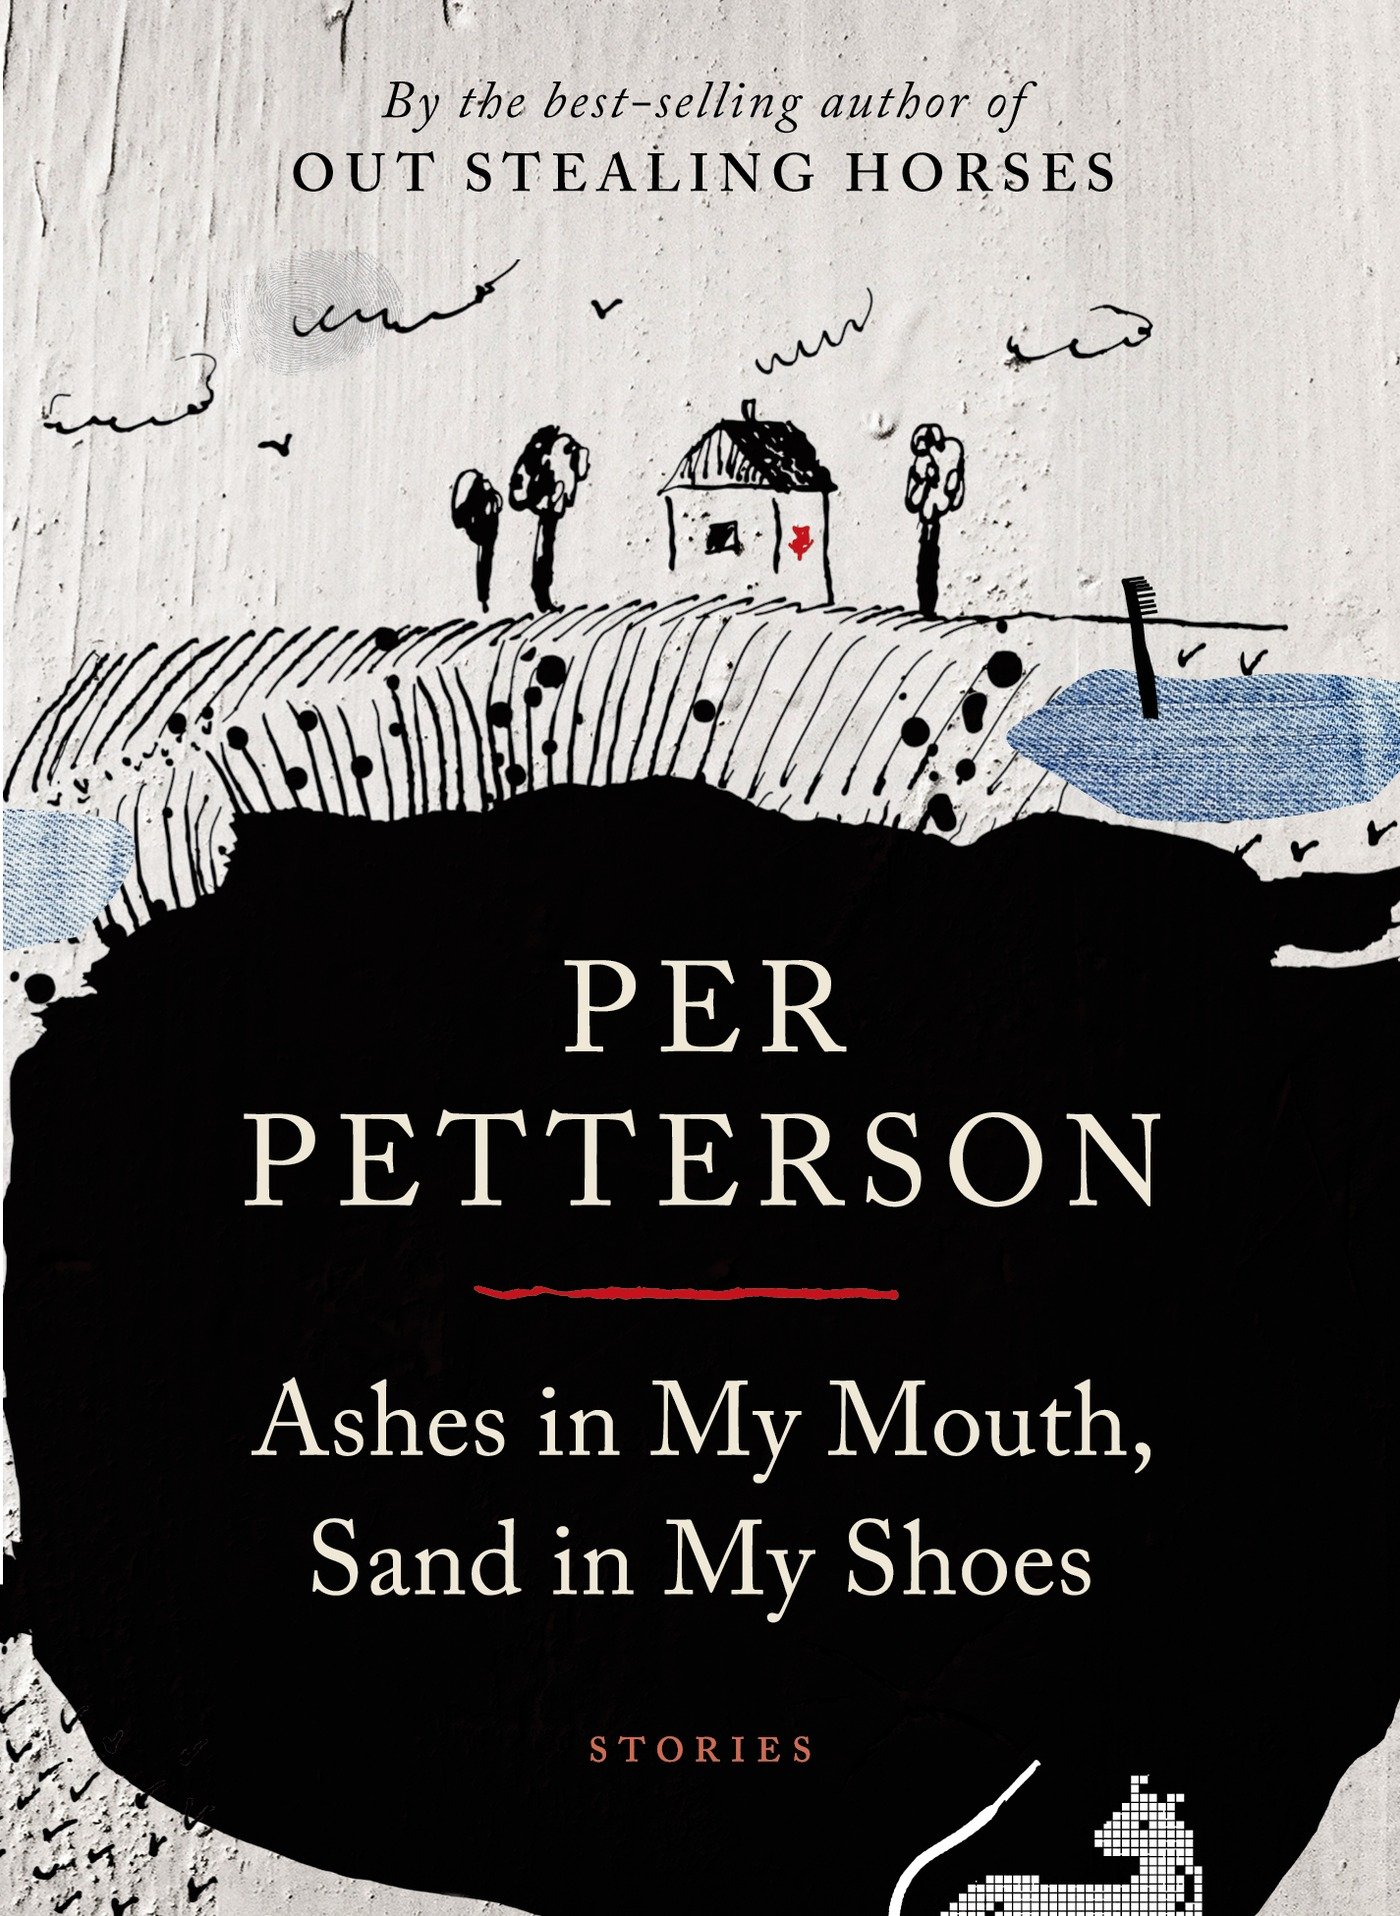 Ashes in My Mouth, Sand in My Shoes: Stories